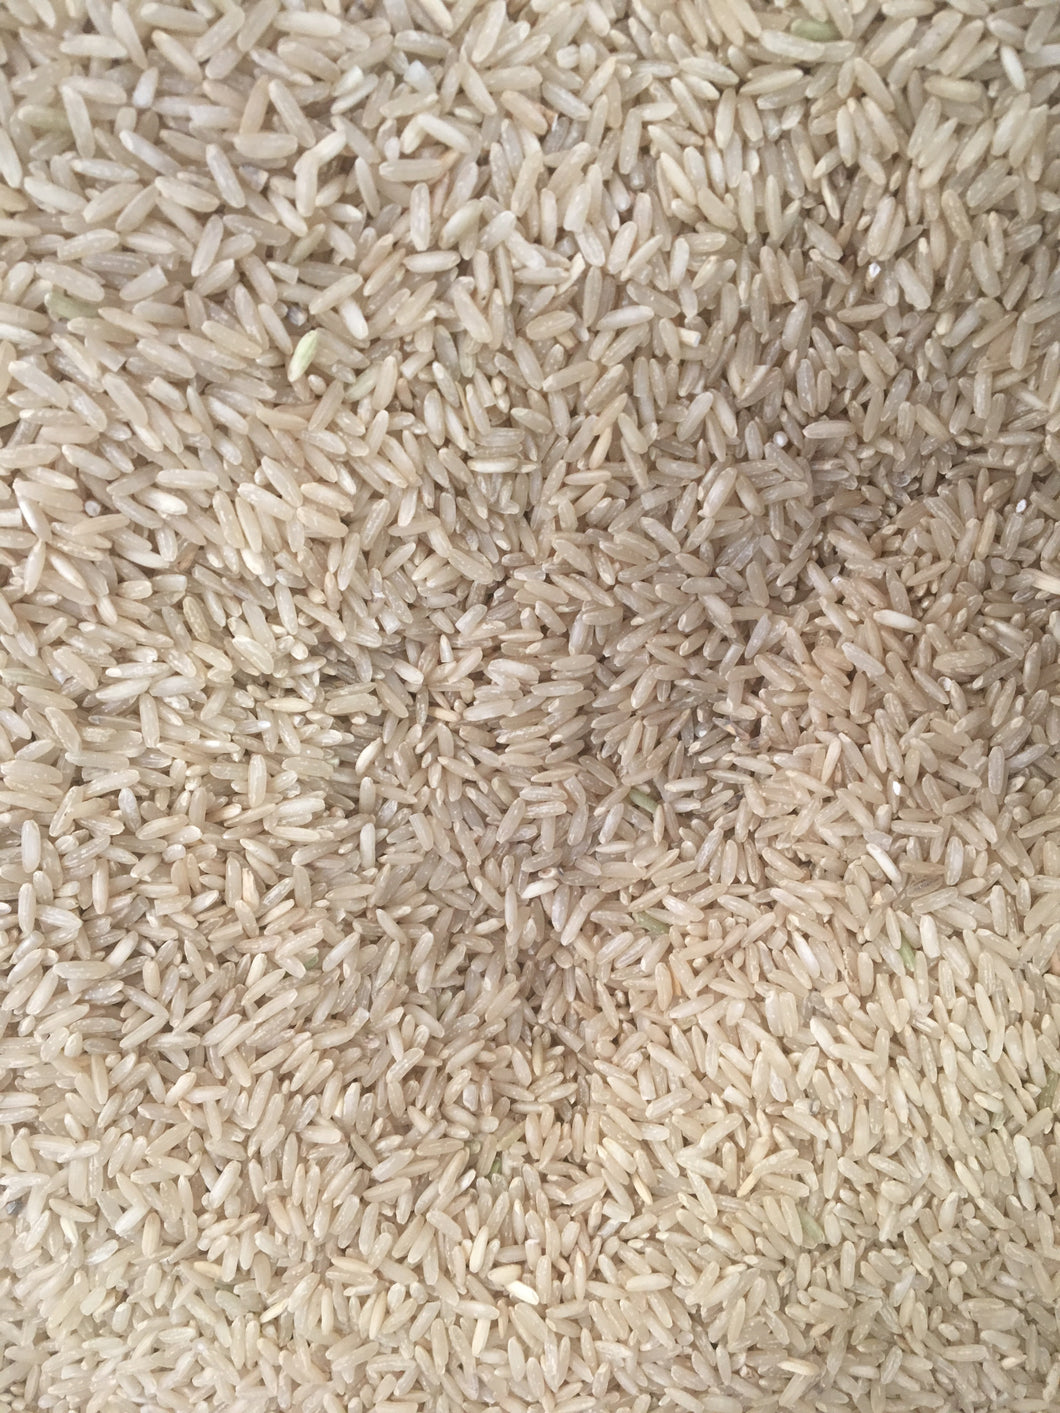 Organic Brown Rice by the pound